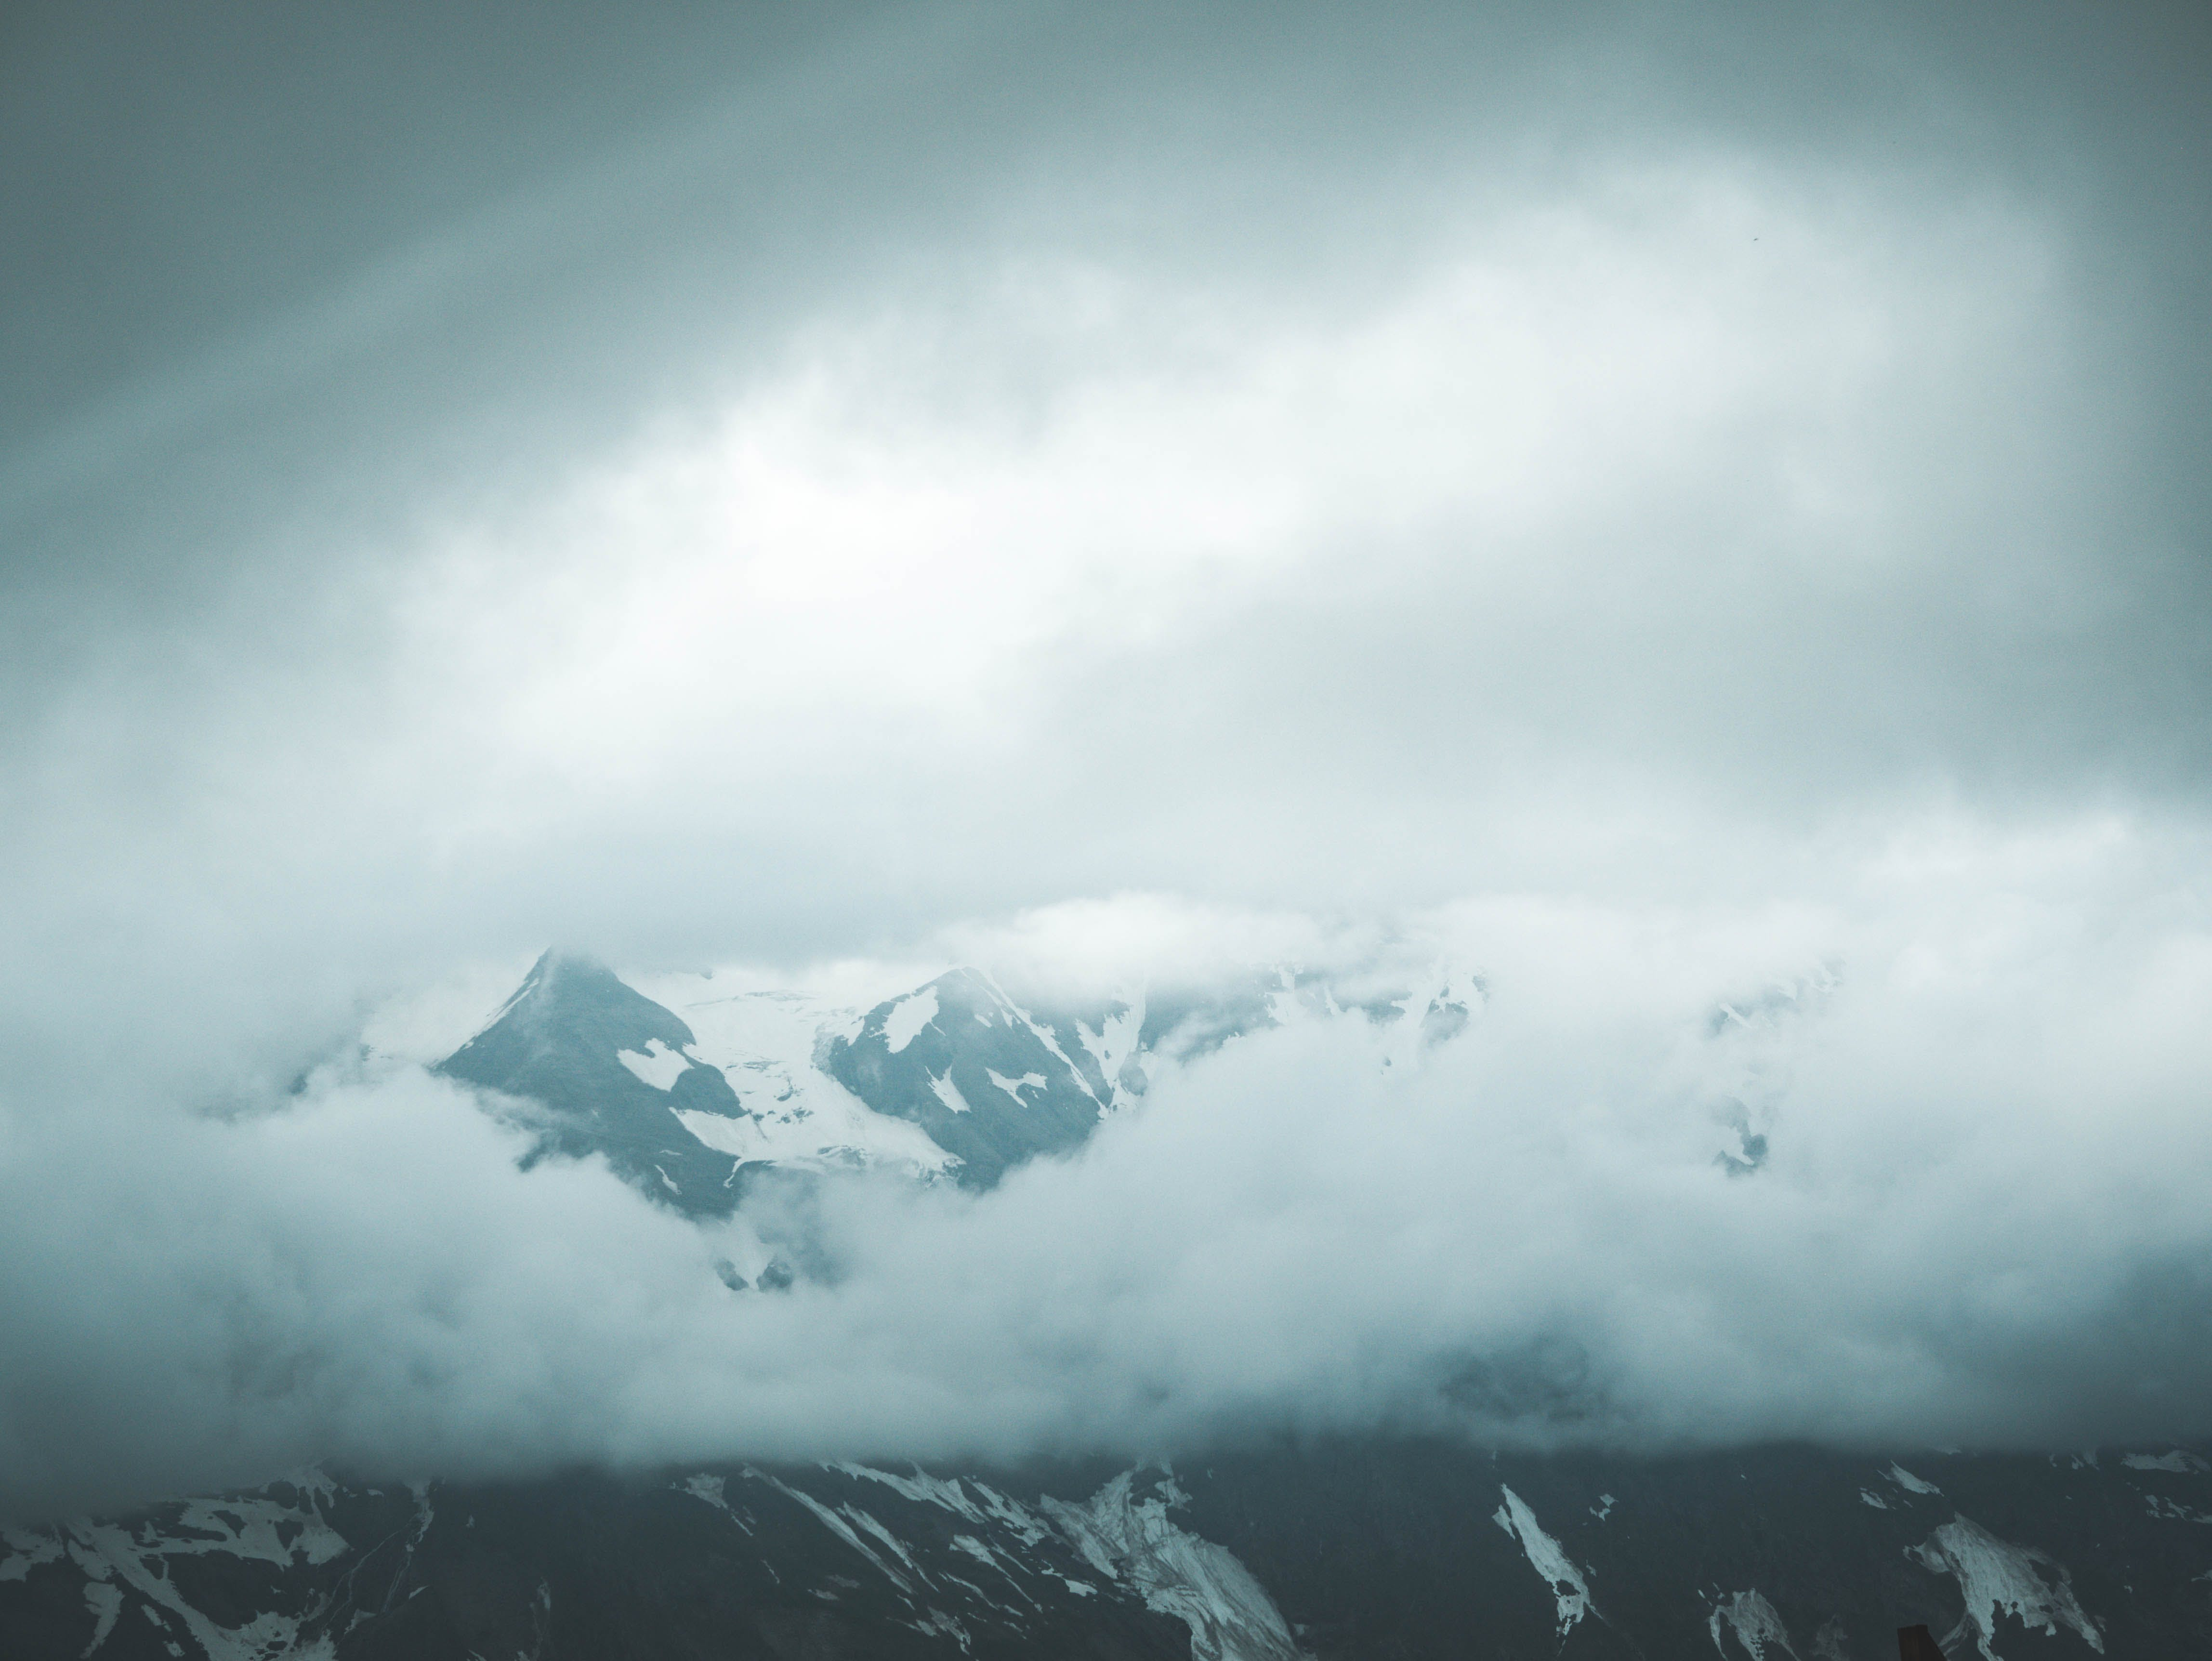 Photograph of Icy Mountain